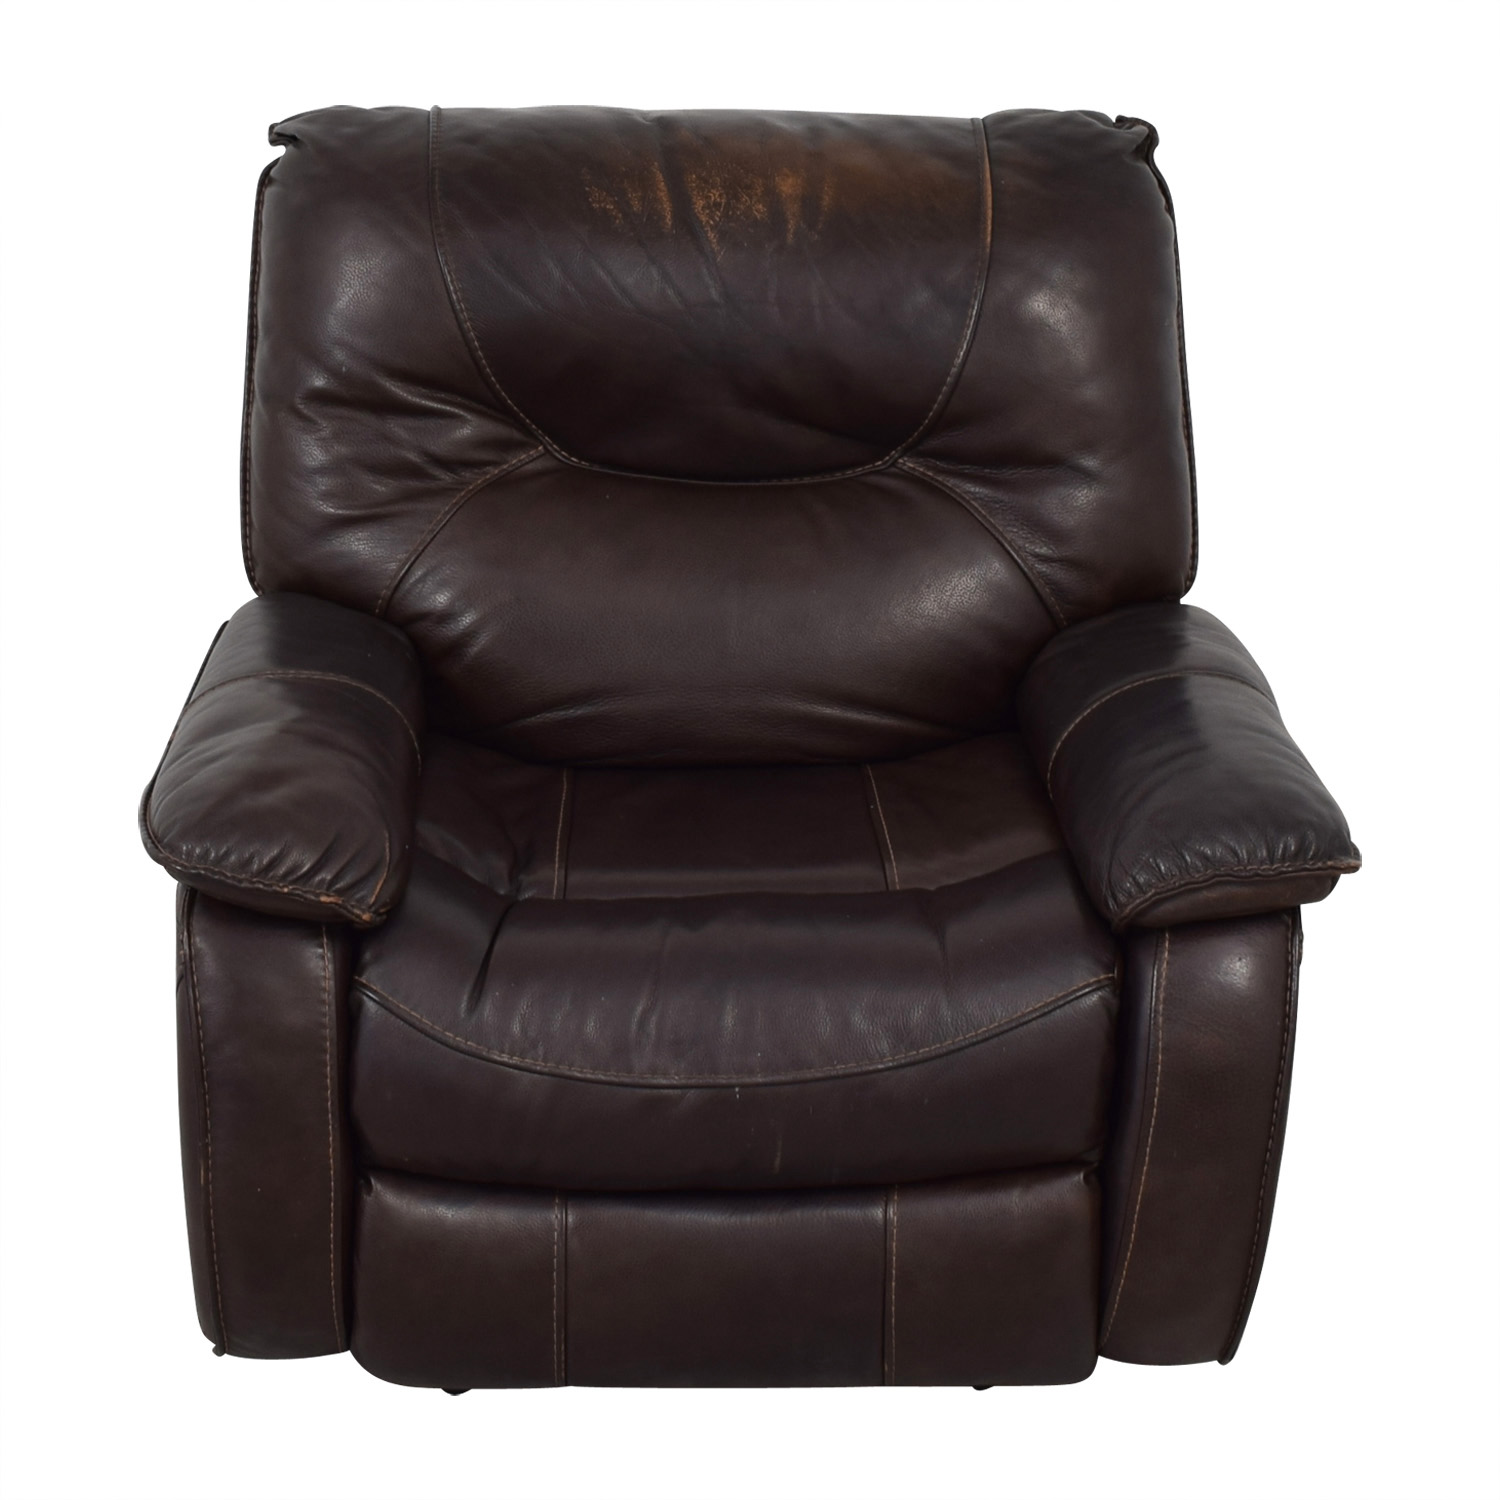 shop Macy's Brown Leather Recliner Chair Macy's